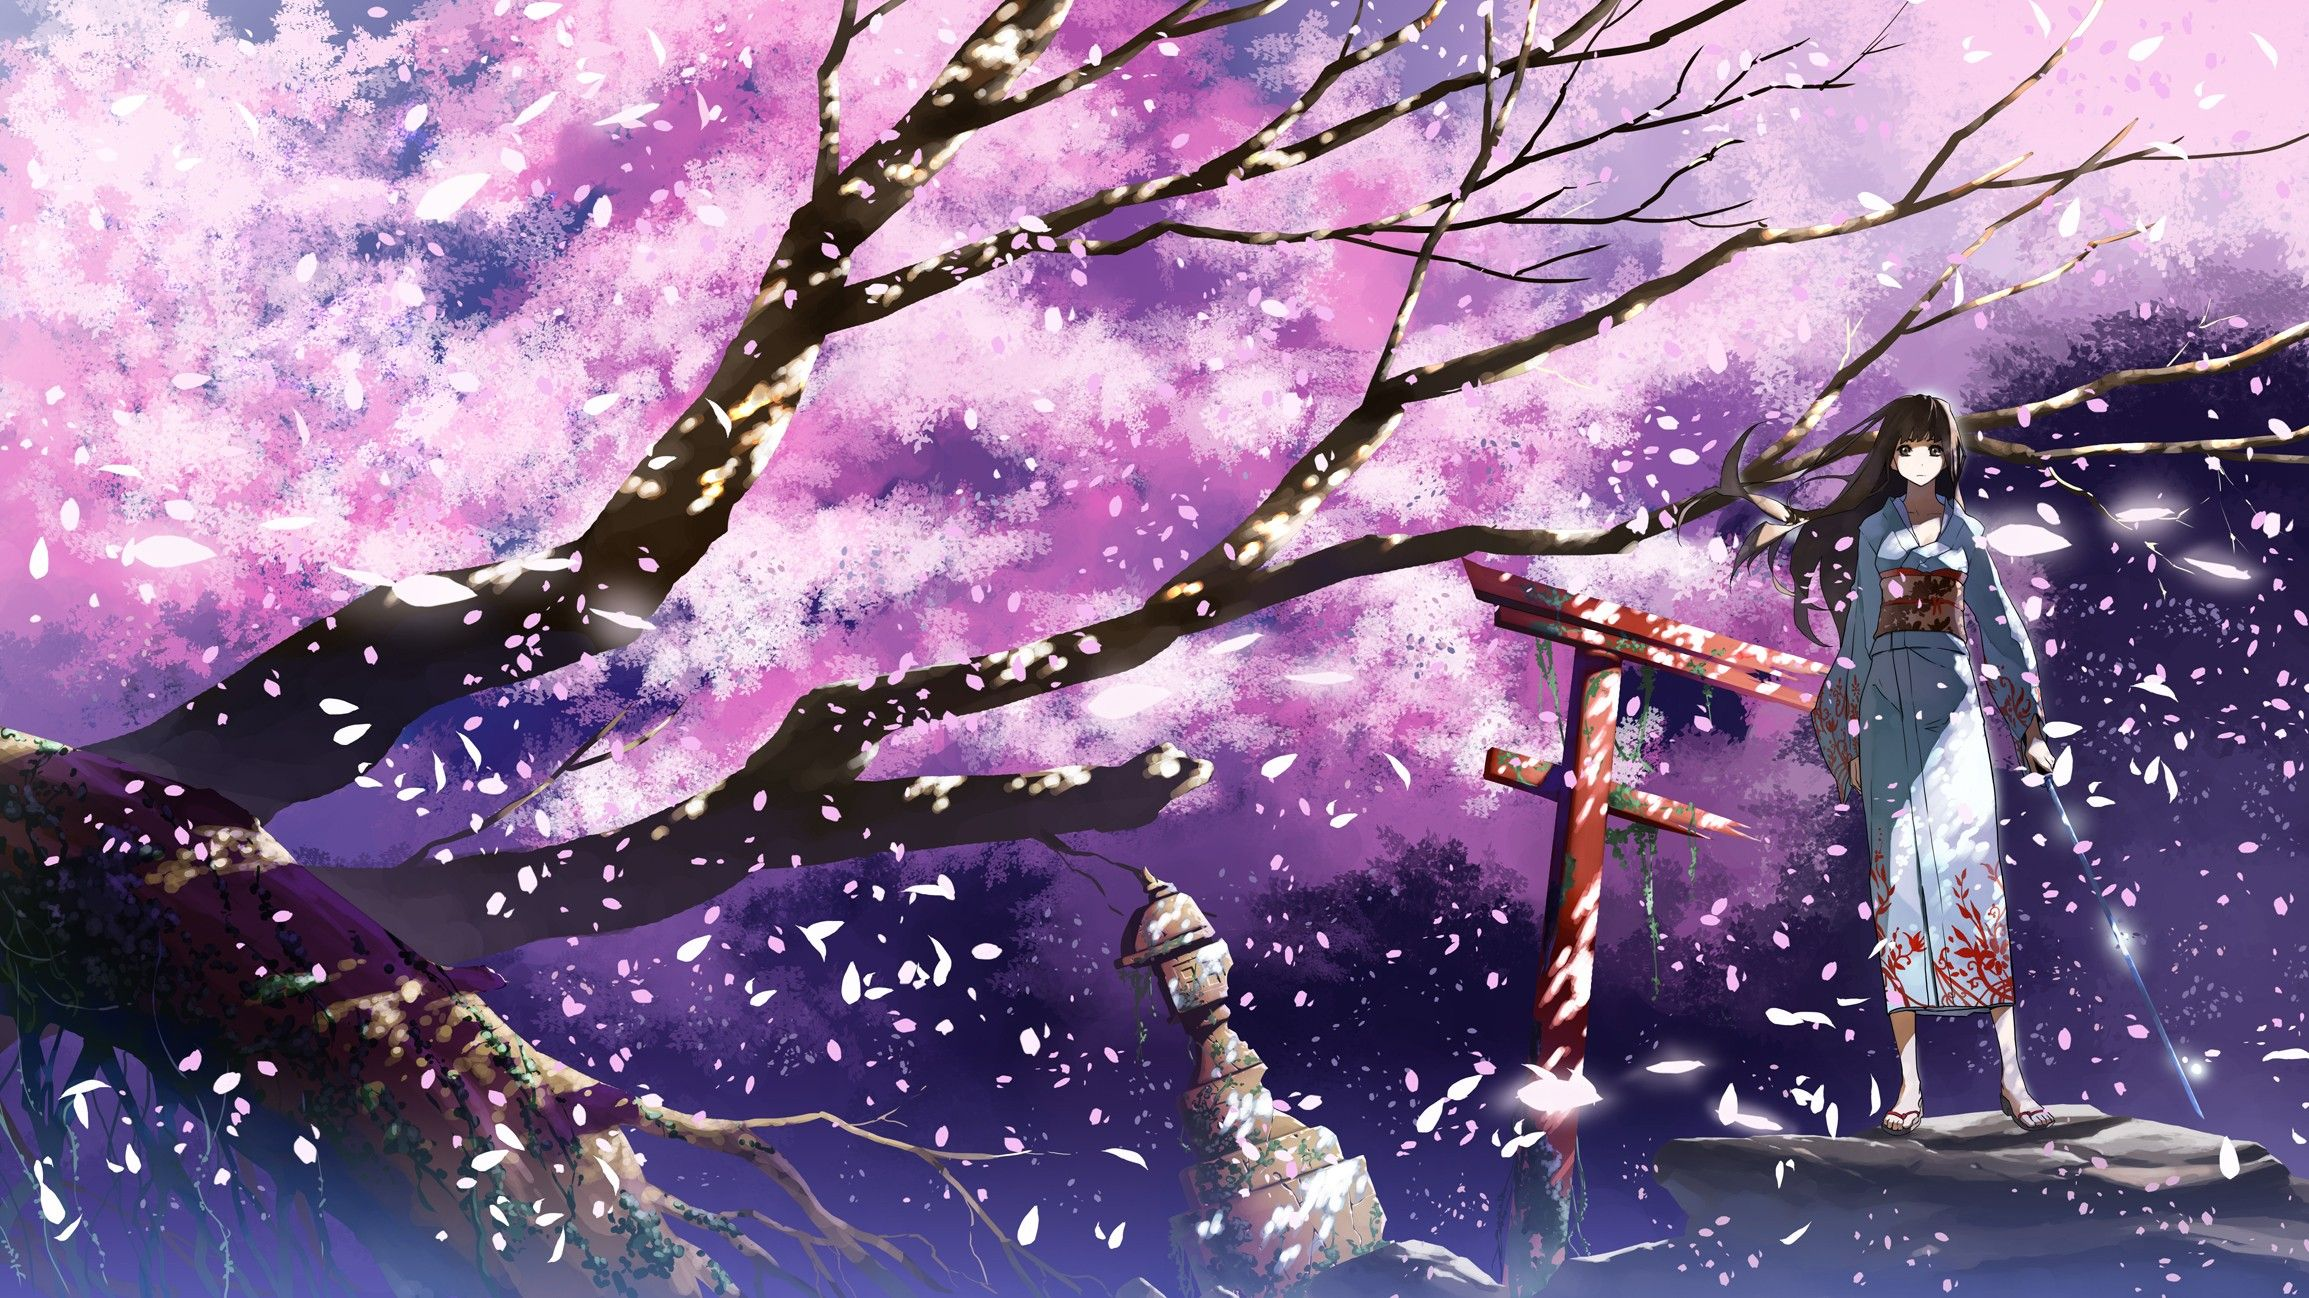 Anime wallpaper 2309x1298 brunettes cherry blossoms katana - Anime cherry blossom wallpaper ...